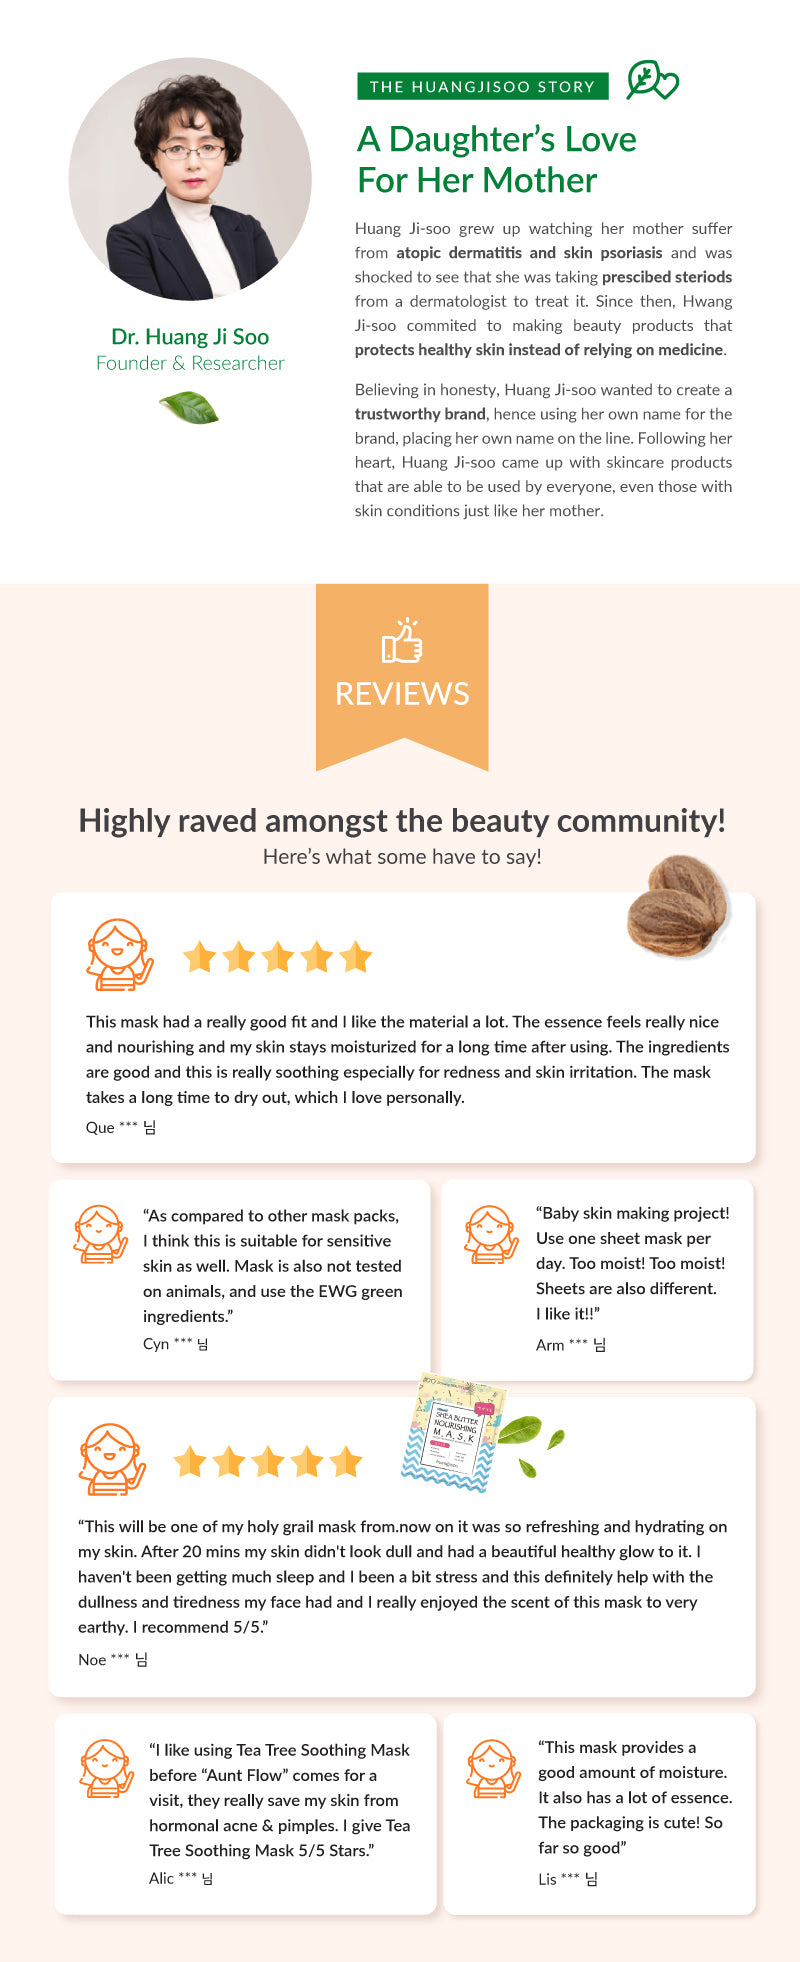 Dr. Huang Ji Soo created a Skincare Range in Korea made for people with very sensitive skin. Huangjisoo Shea Butter Nourishing Face Mask is organic but is highly effective in moisturising and hydrating dry skin. Check out the skincare reviews by beauty community in Korea